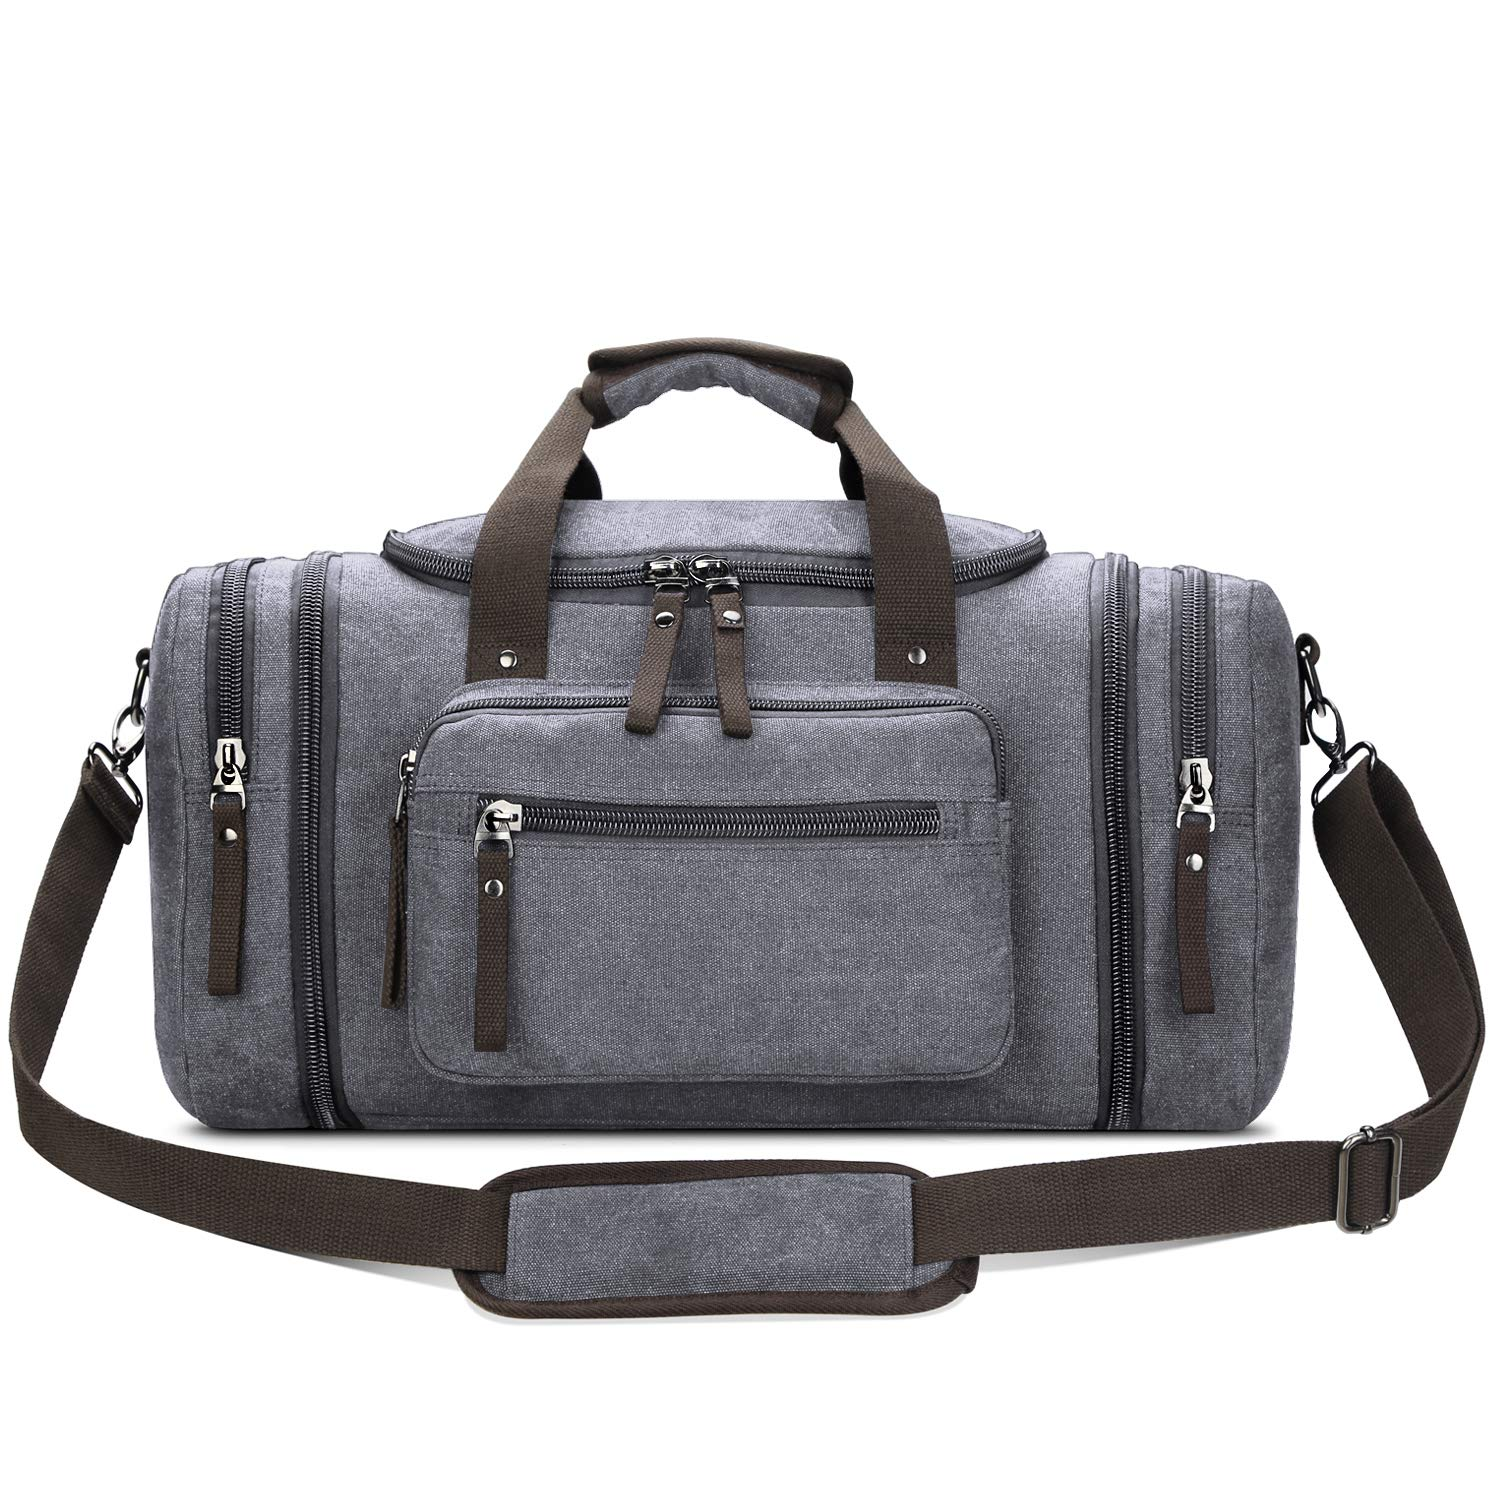 24616ca71859 Toupons Canvas Duffel Bag Small Carry-on Bag Overnight Bag Weekender Bag  for Men (Grey)